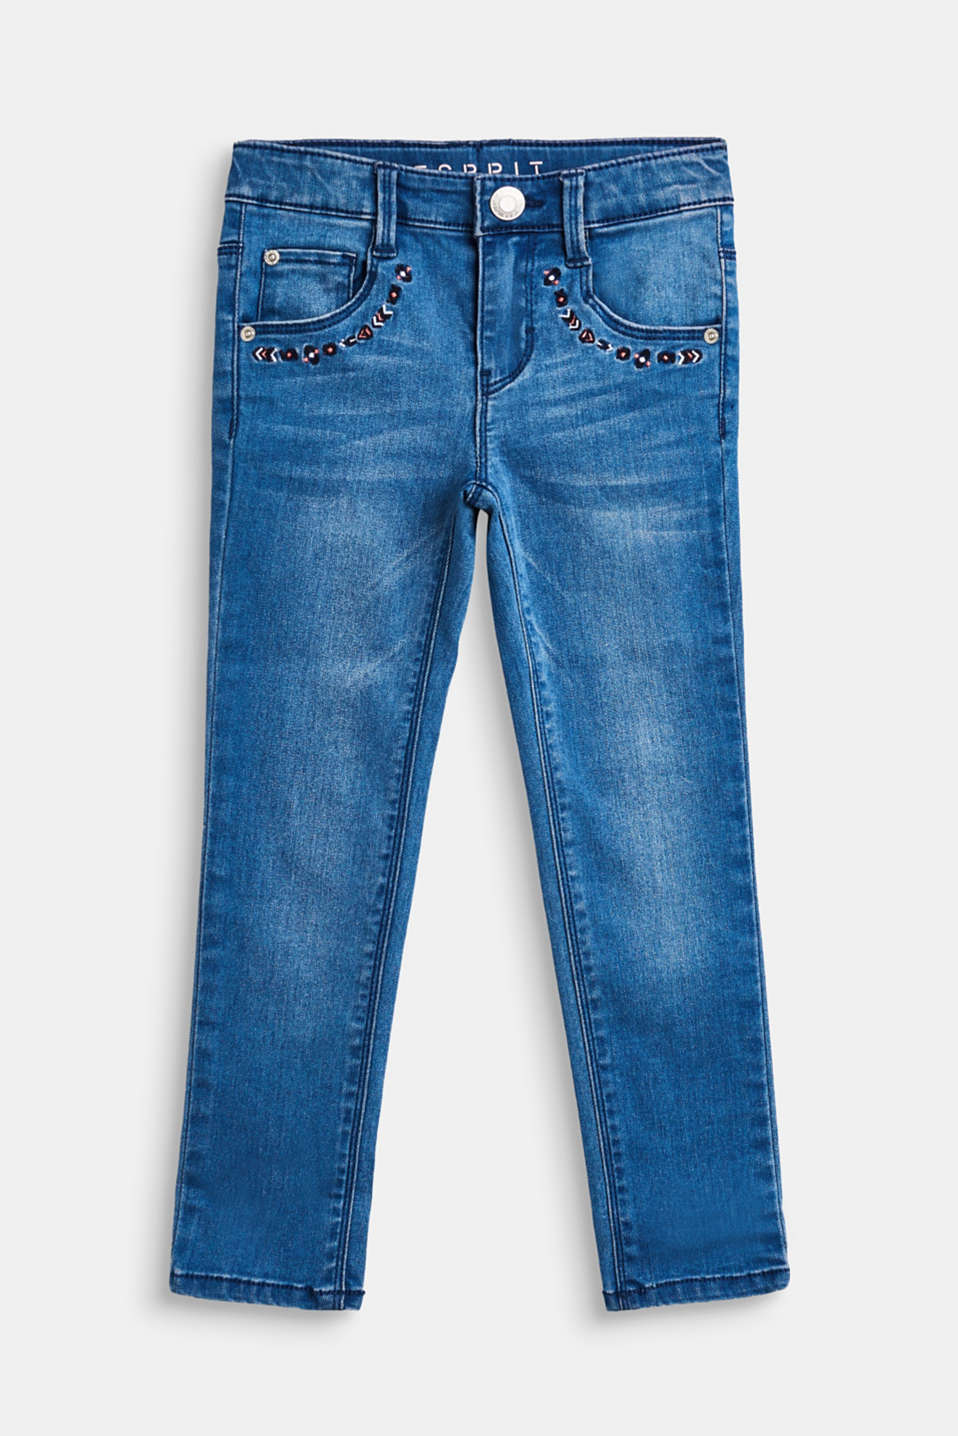 Esprit - Stretch jeans with tribal embroidery